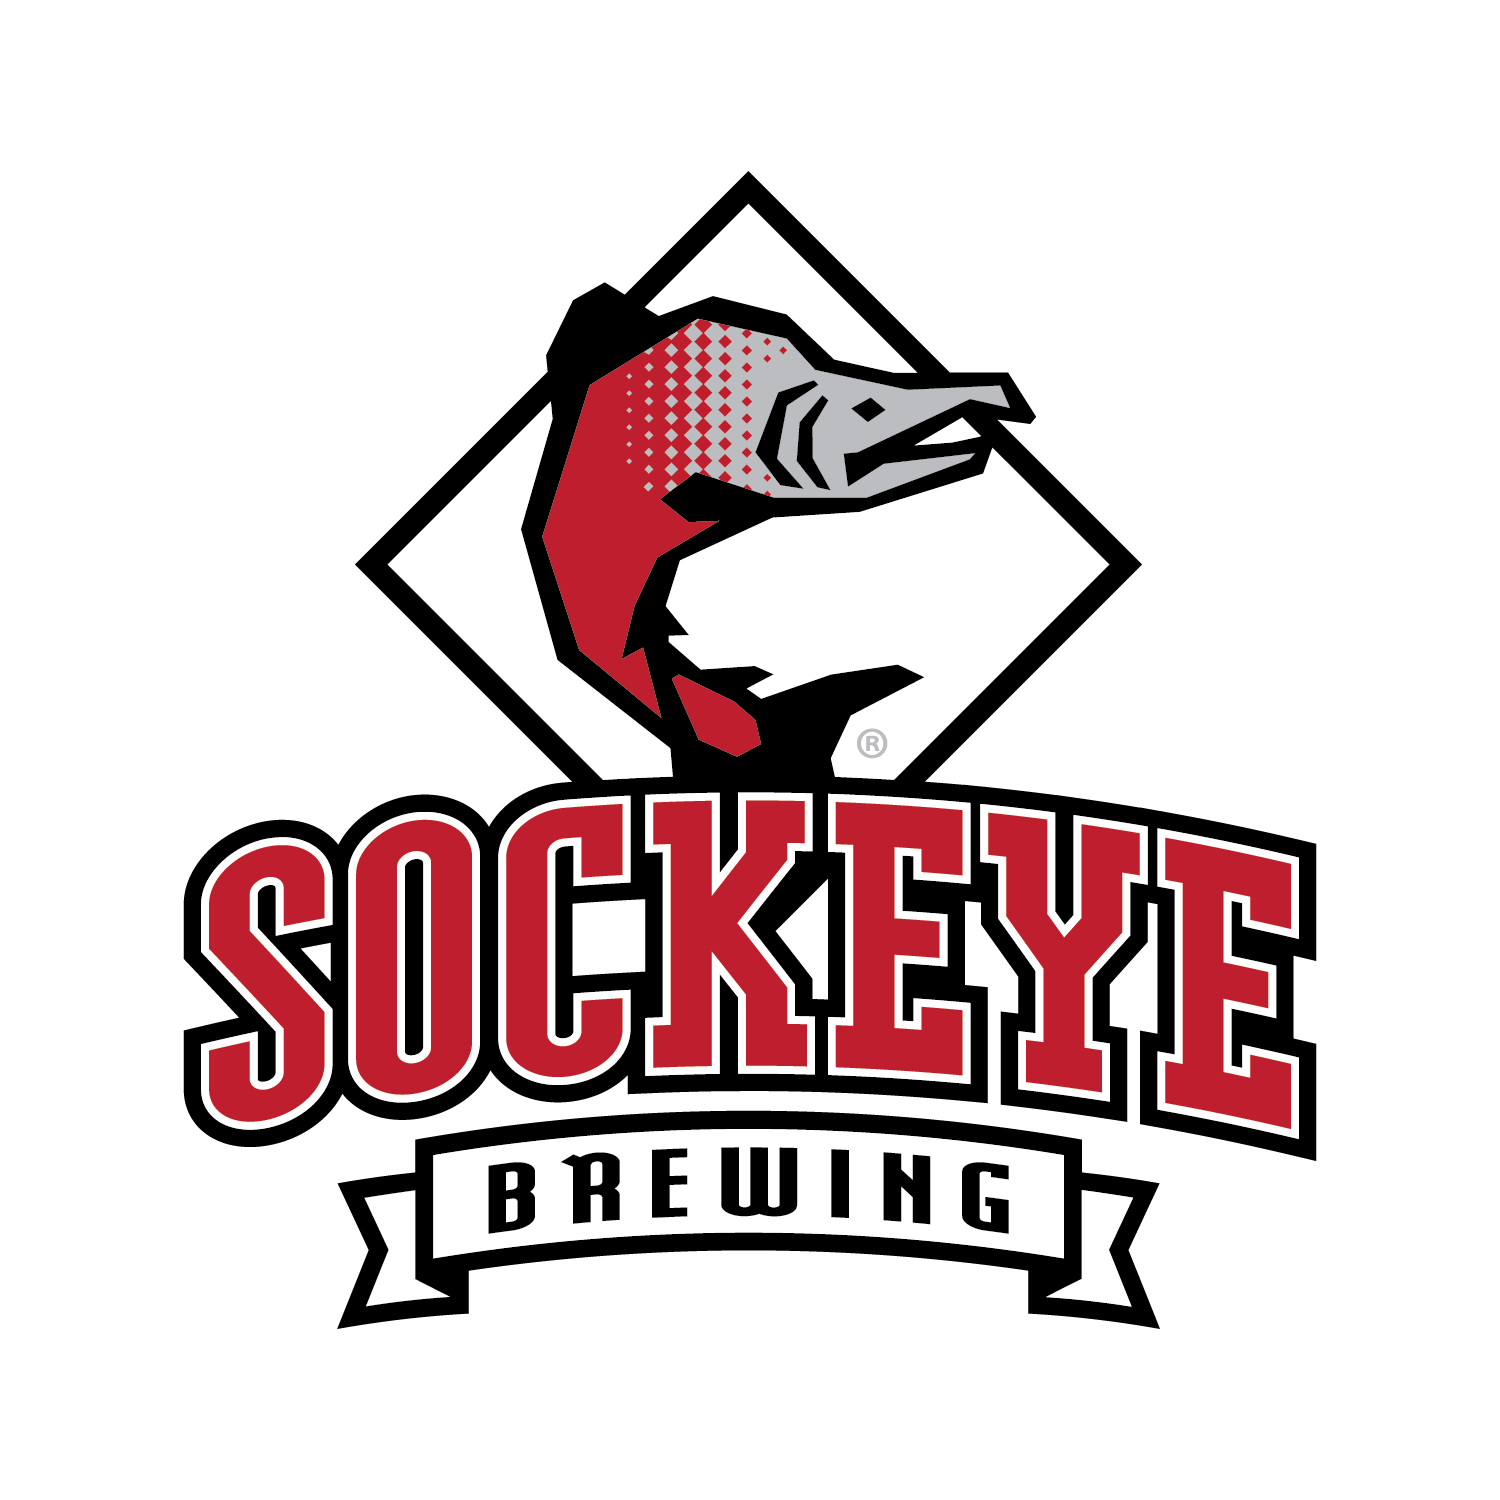 Sockeye-Logo-No-ID-handcrafted-01.png